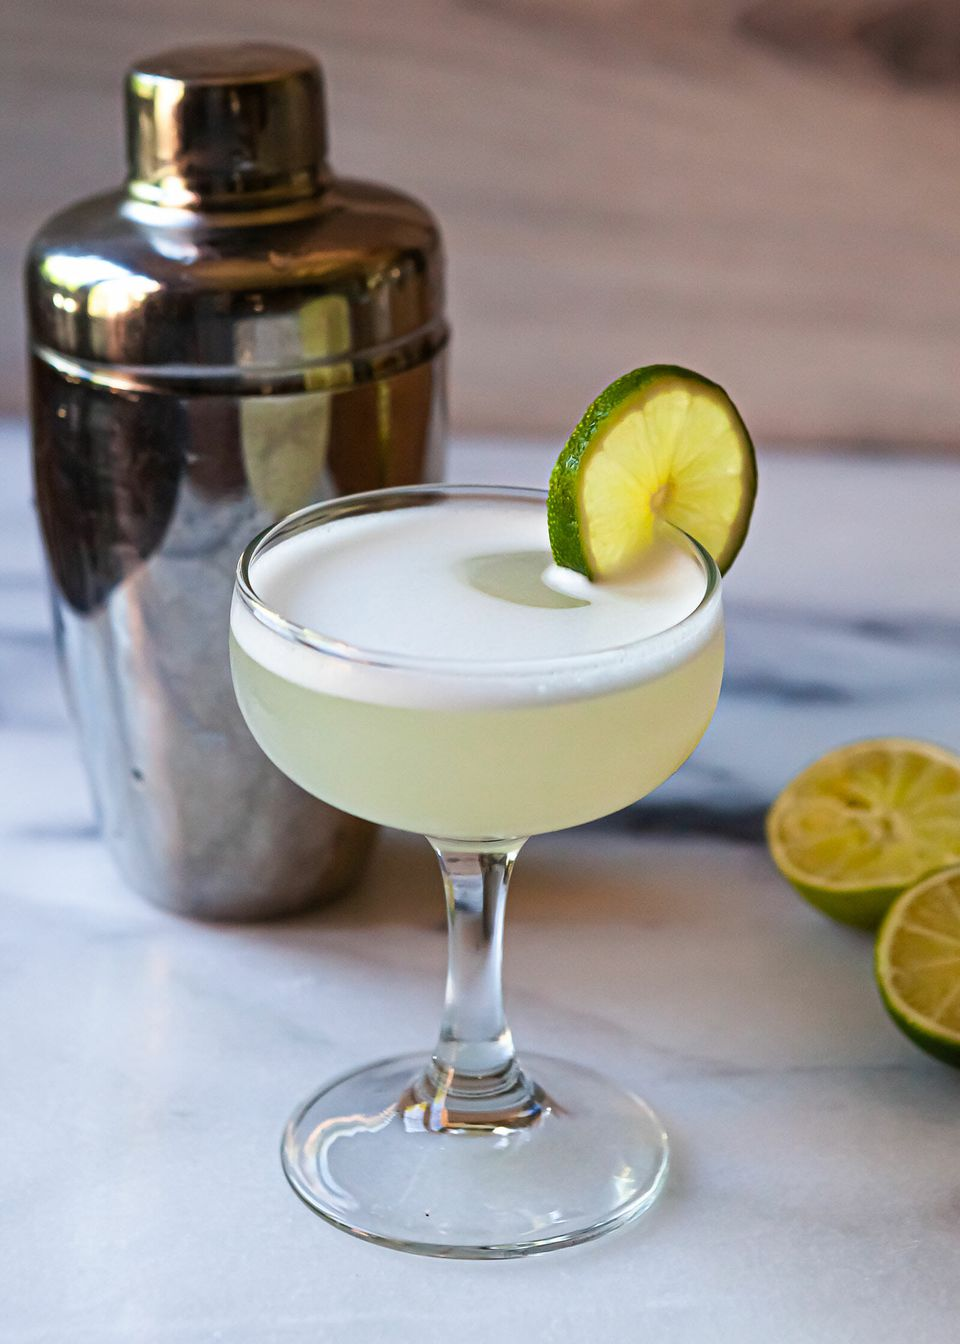 A gimlet recipe in a chilled coupe glass with a cocktail shaker behind it and limes to the right.